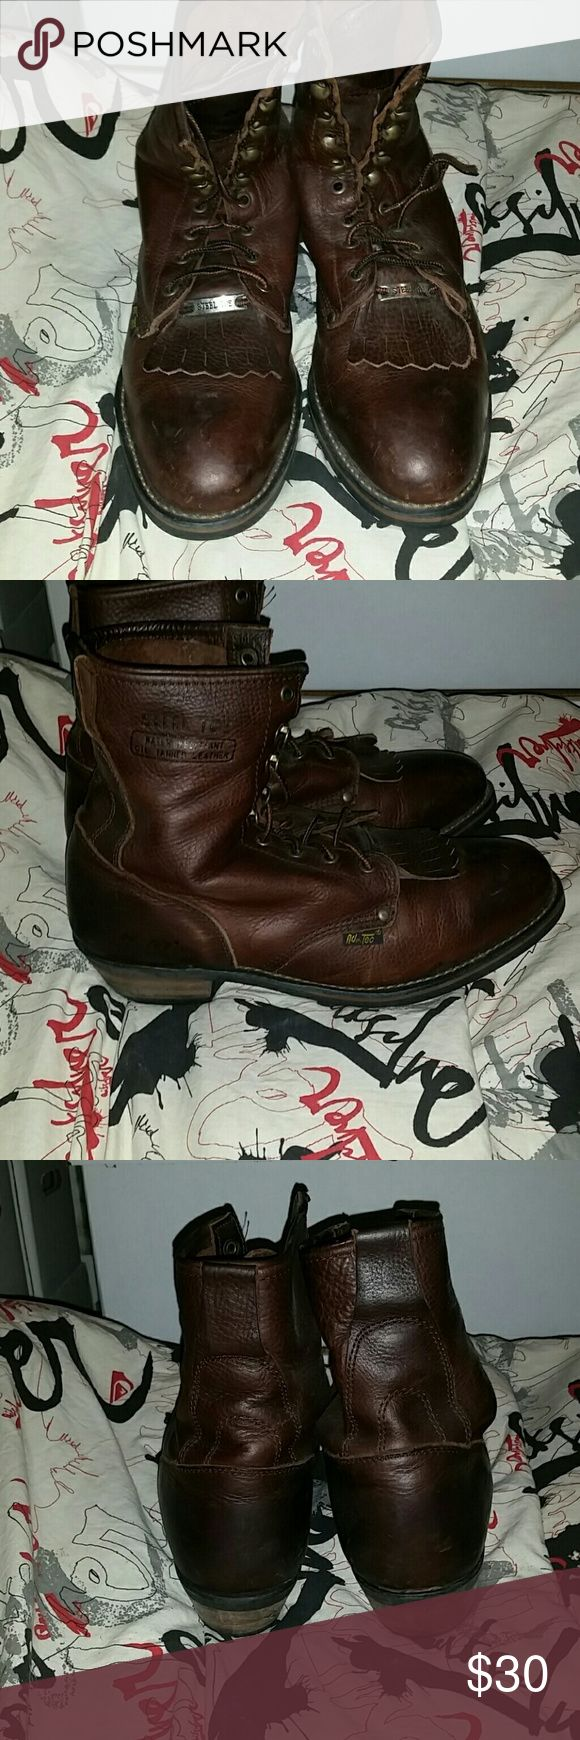 Mens AD-Tec steel toe boots Worn very little bottom soles show very very little wear at all. Too small Ad Tec Shoes Boots